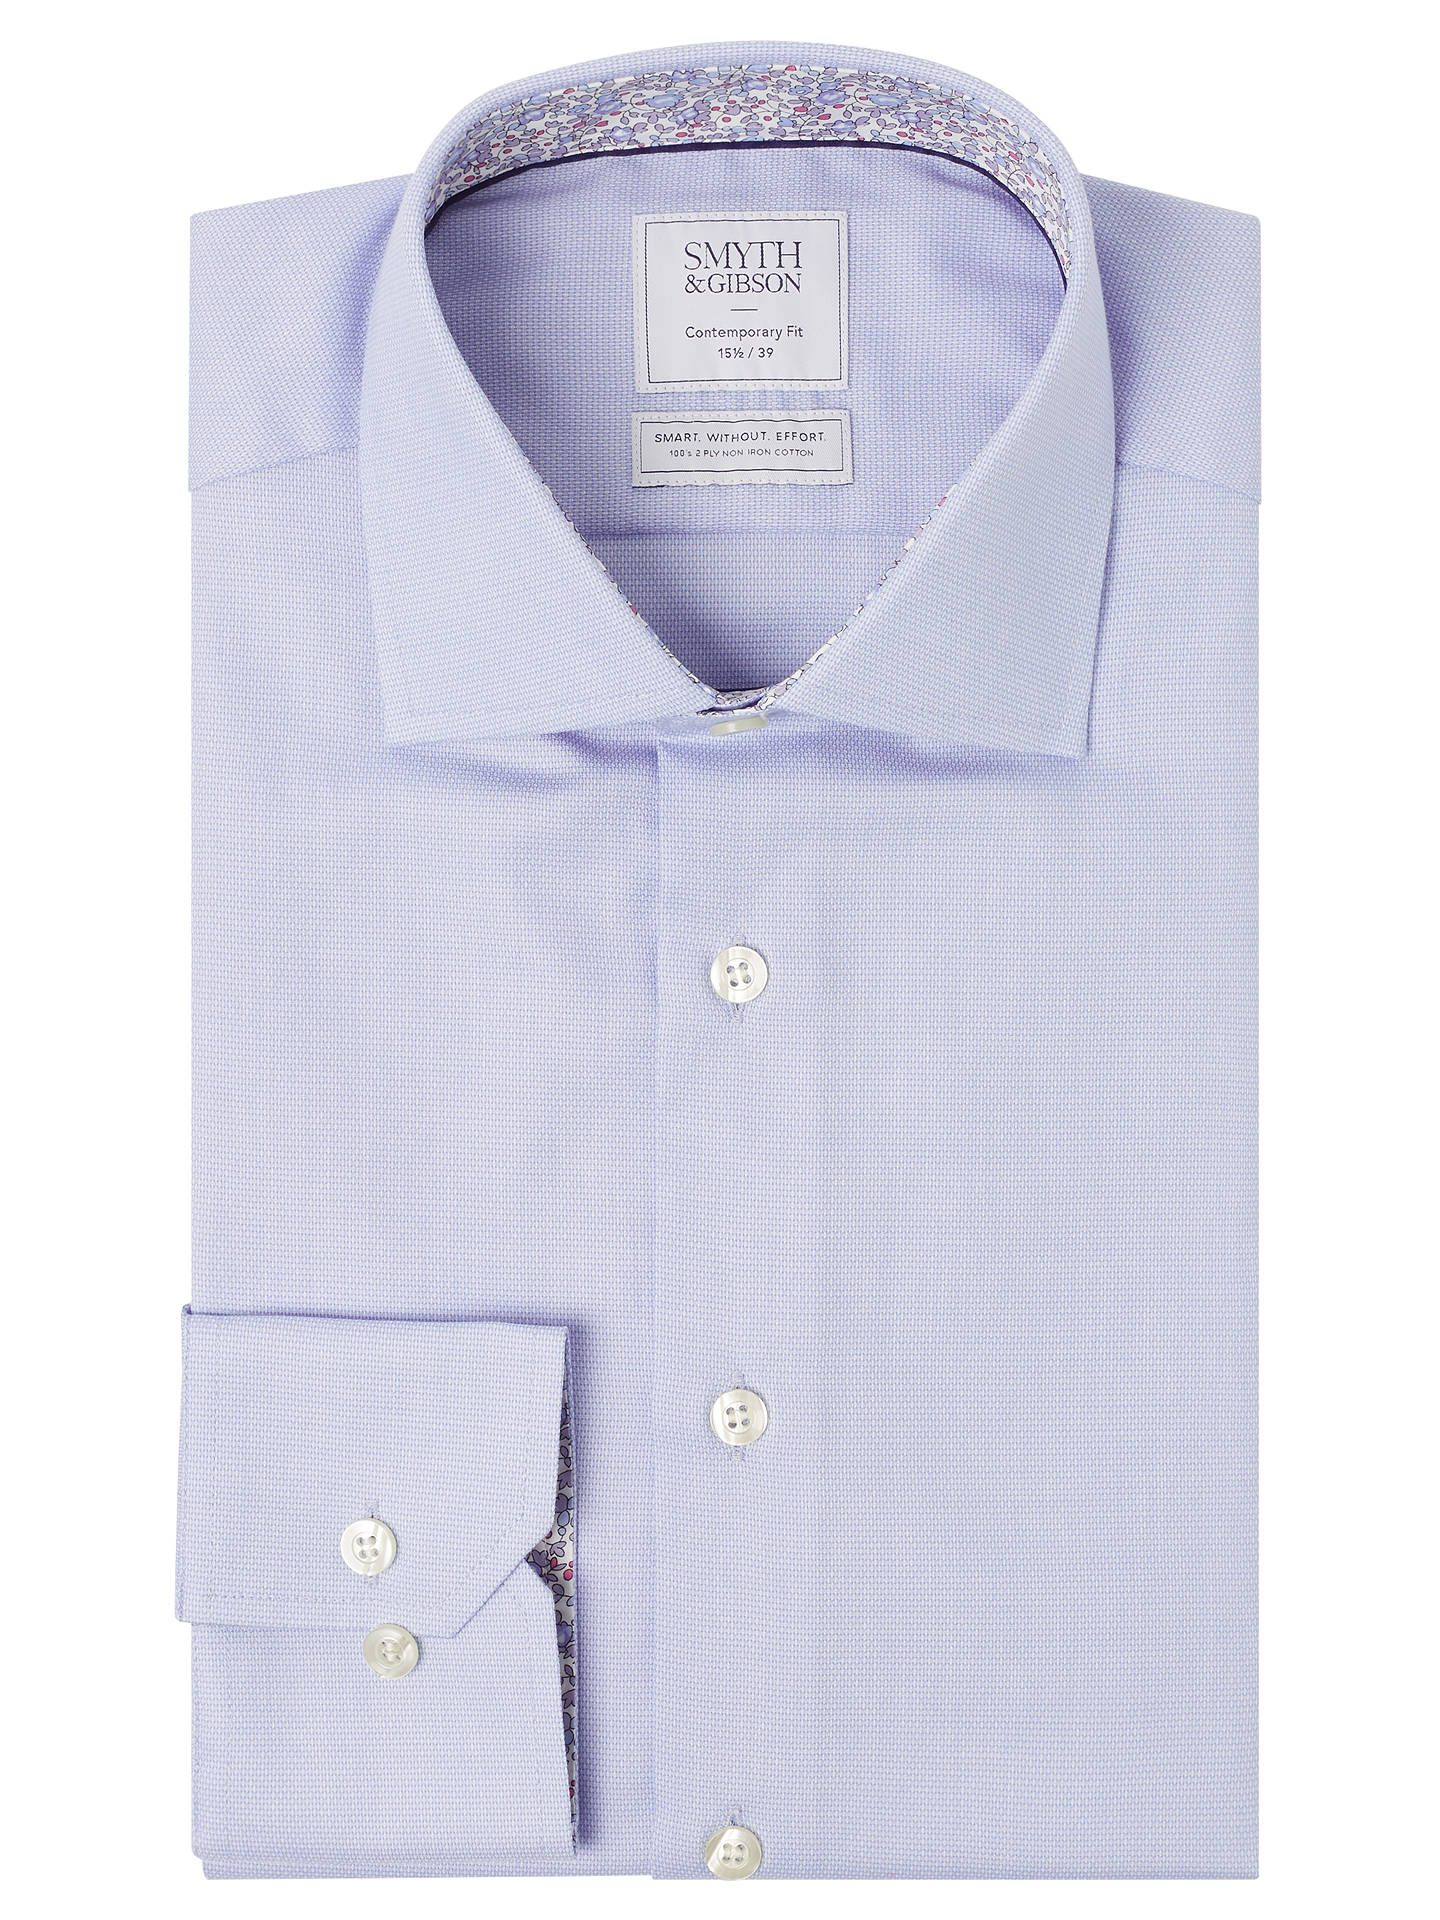 BuySmyth & Gibson Textured Pique Liberty Print Contemporary Fit Shirt, Sky, 15 Online at johnlewis.com